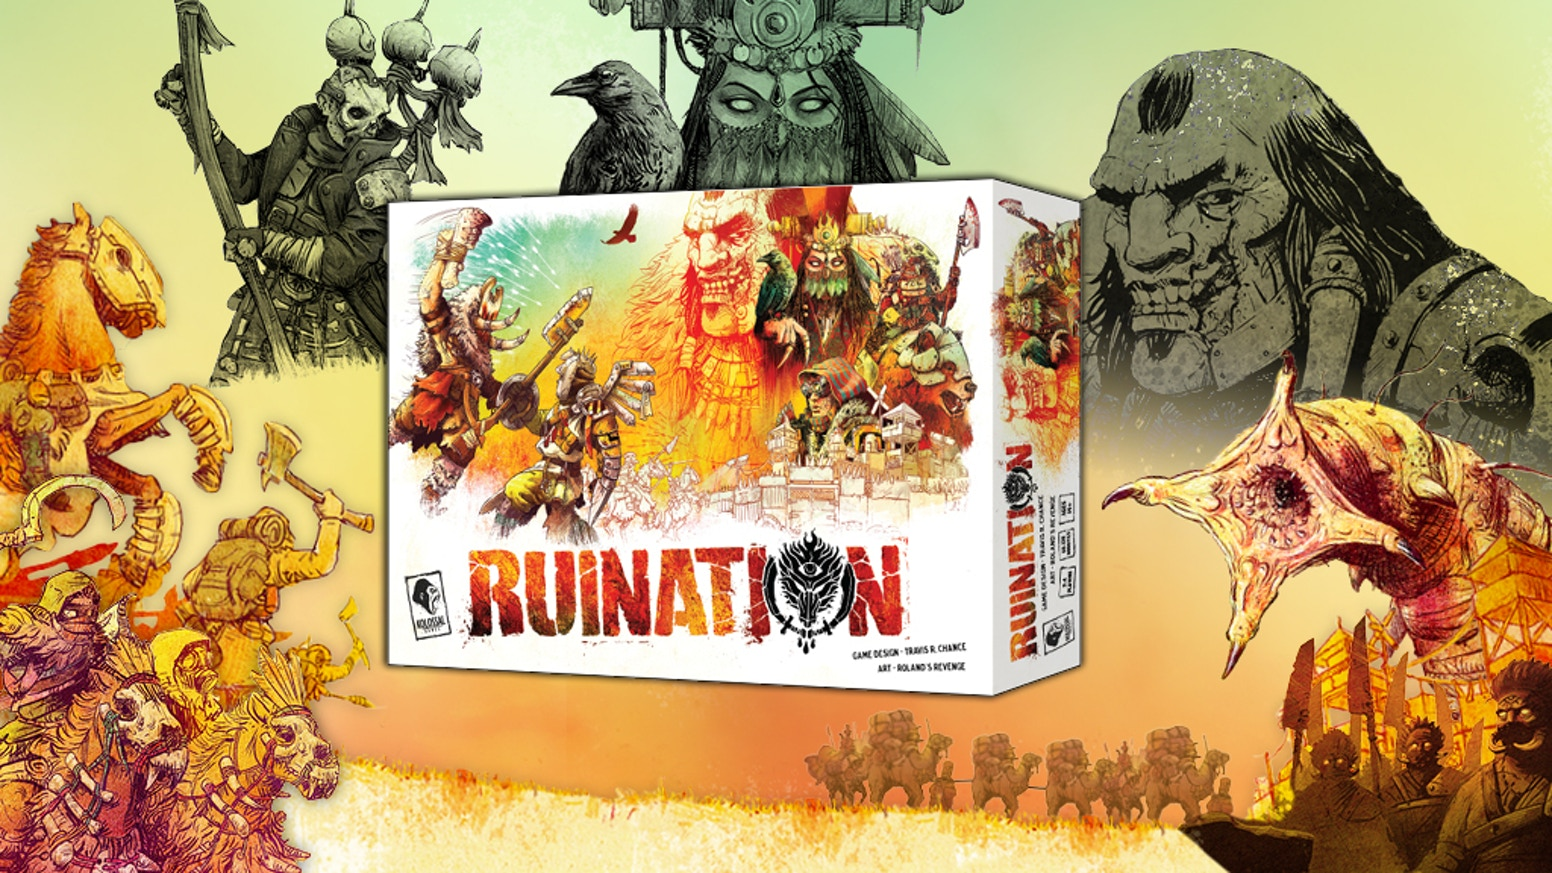 Ruination is a 2-4 player game of post-apocalyptic conquest. Only the most resourceful horde will rule beside the Khan!